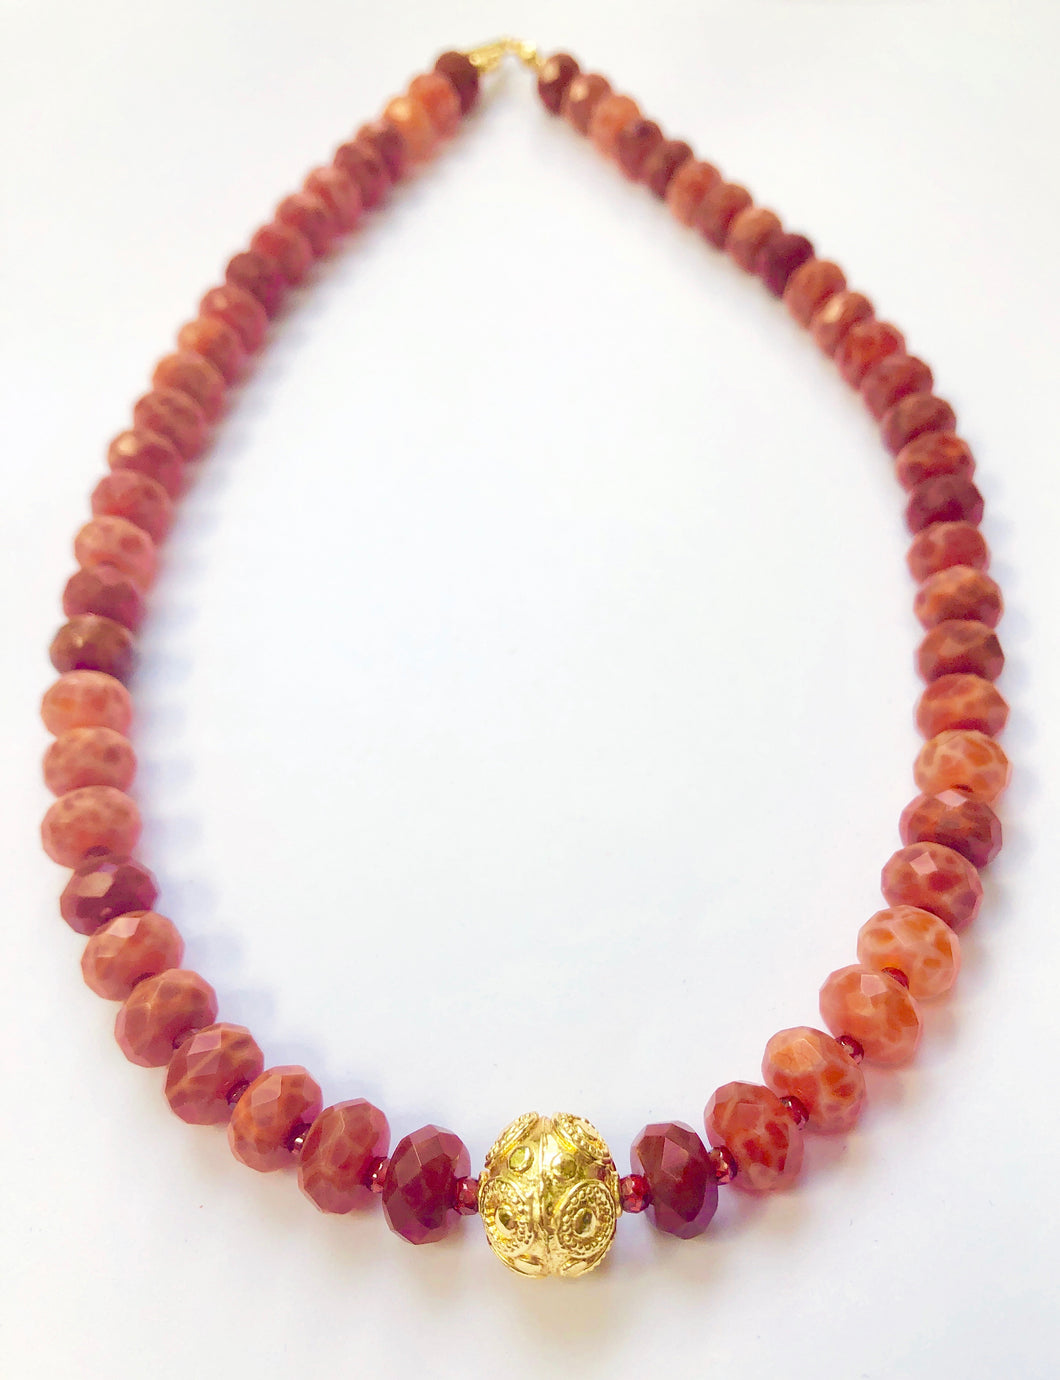 Perfect for Cool Weather! A Fire Agate and Garnet Necklace